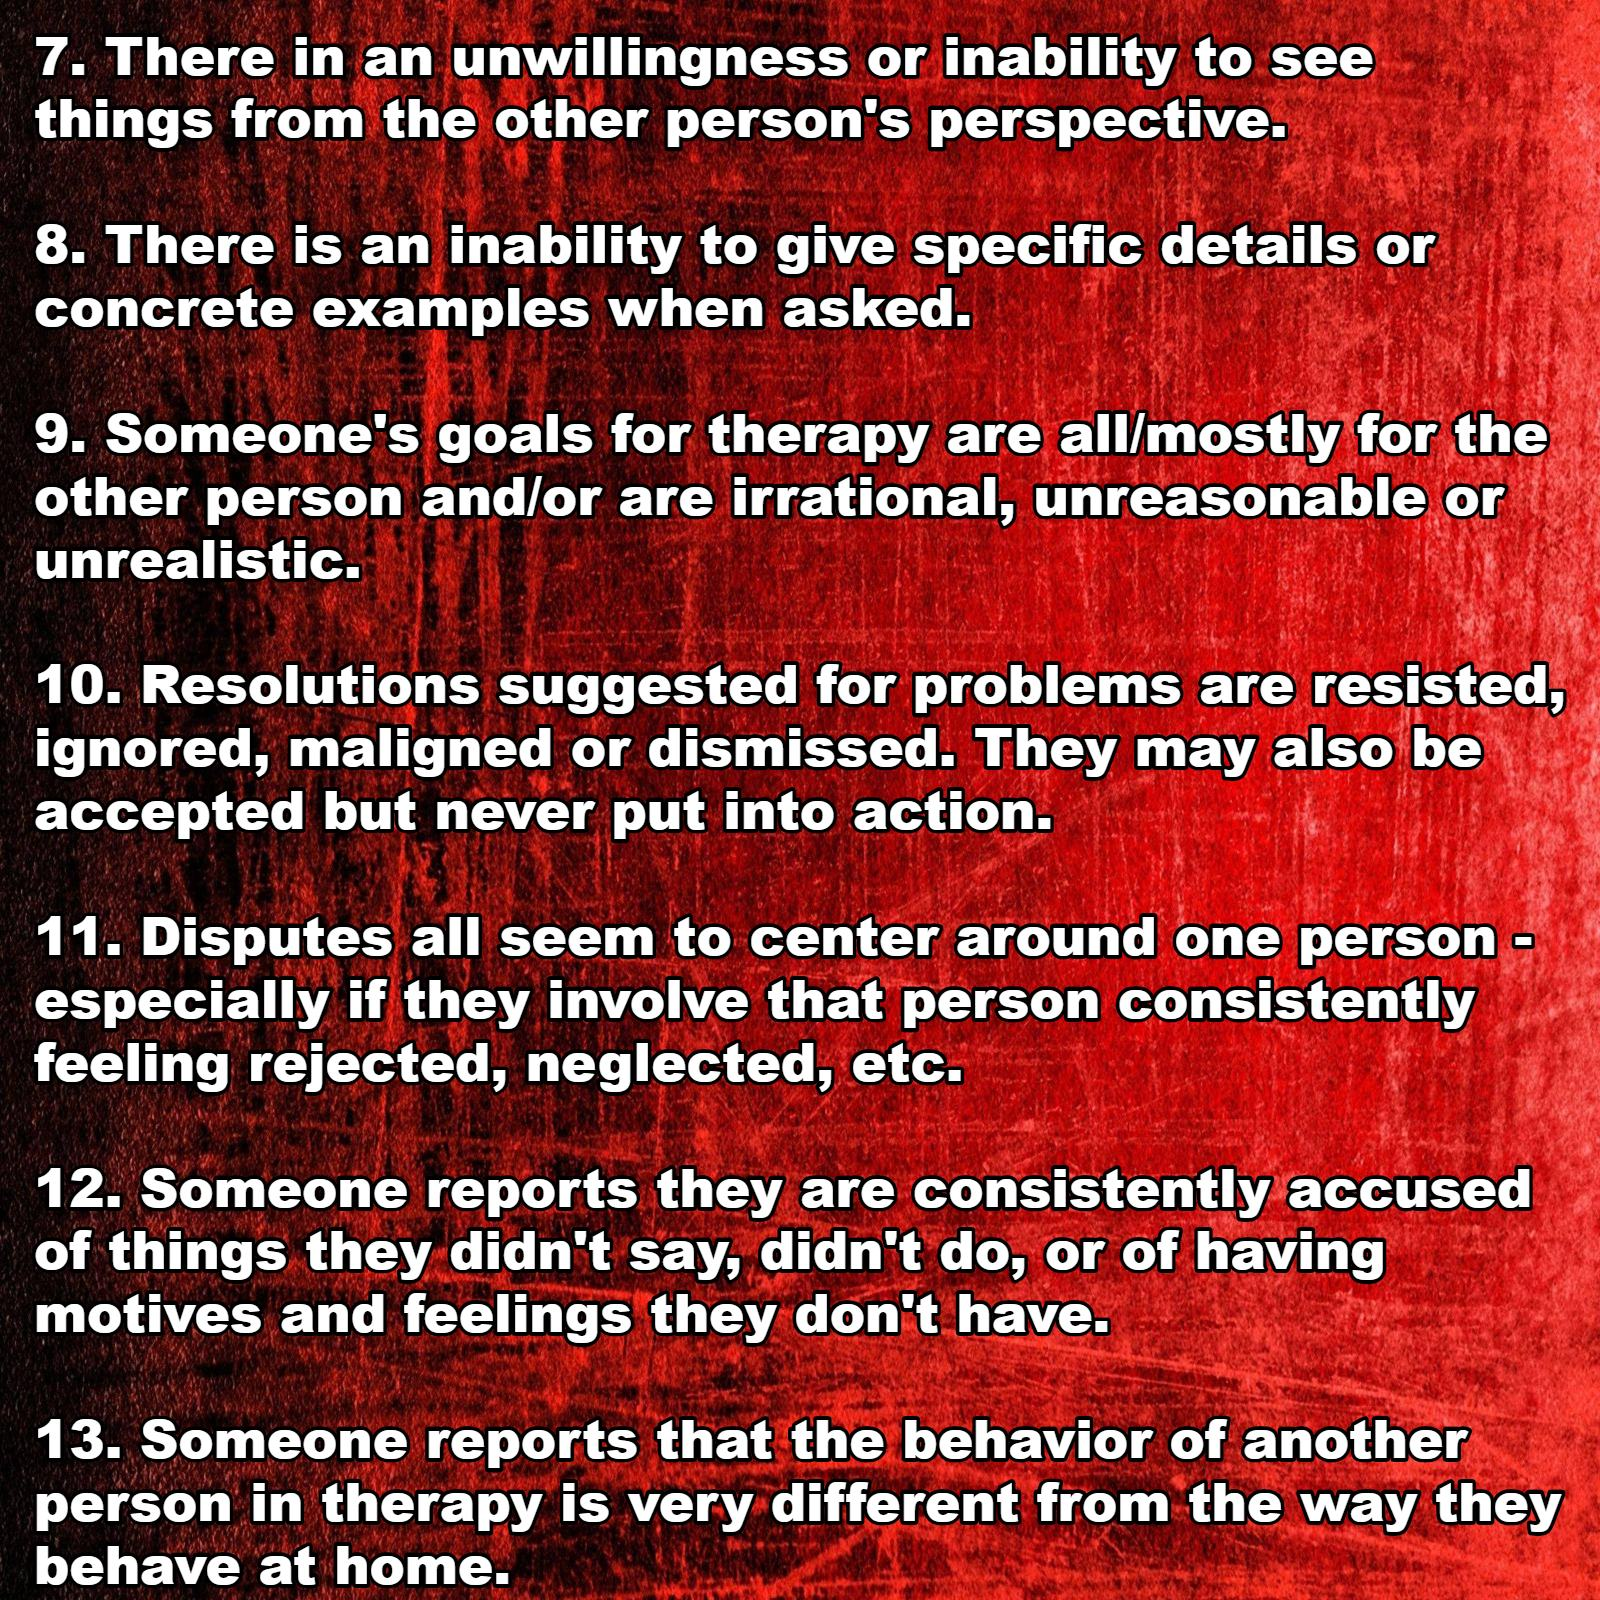 red flags for therapist 2.jpg